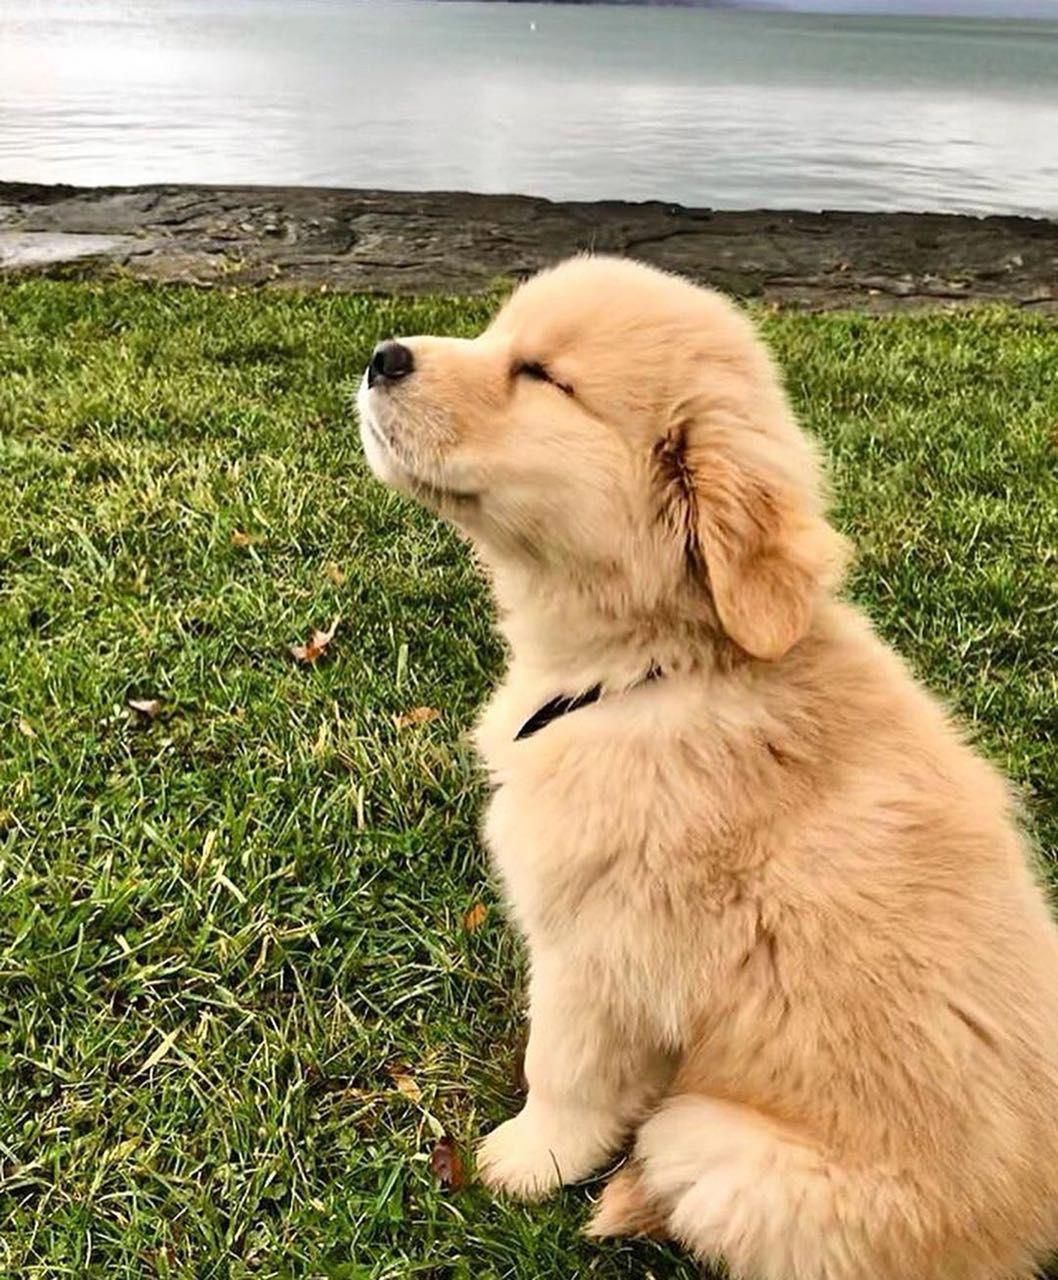 Facts On The Golden Retriever Puppies And Kids Goldenretrievershirts Goldenretrieverofig Goldenretrievertraining Cute Animals Cute Baby Animals Puppies